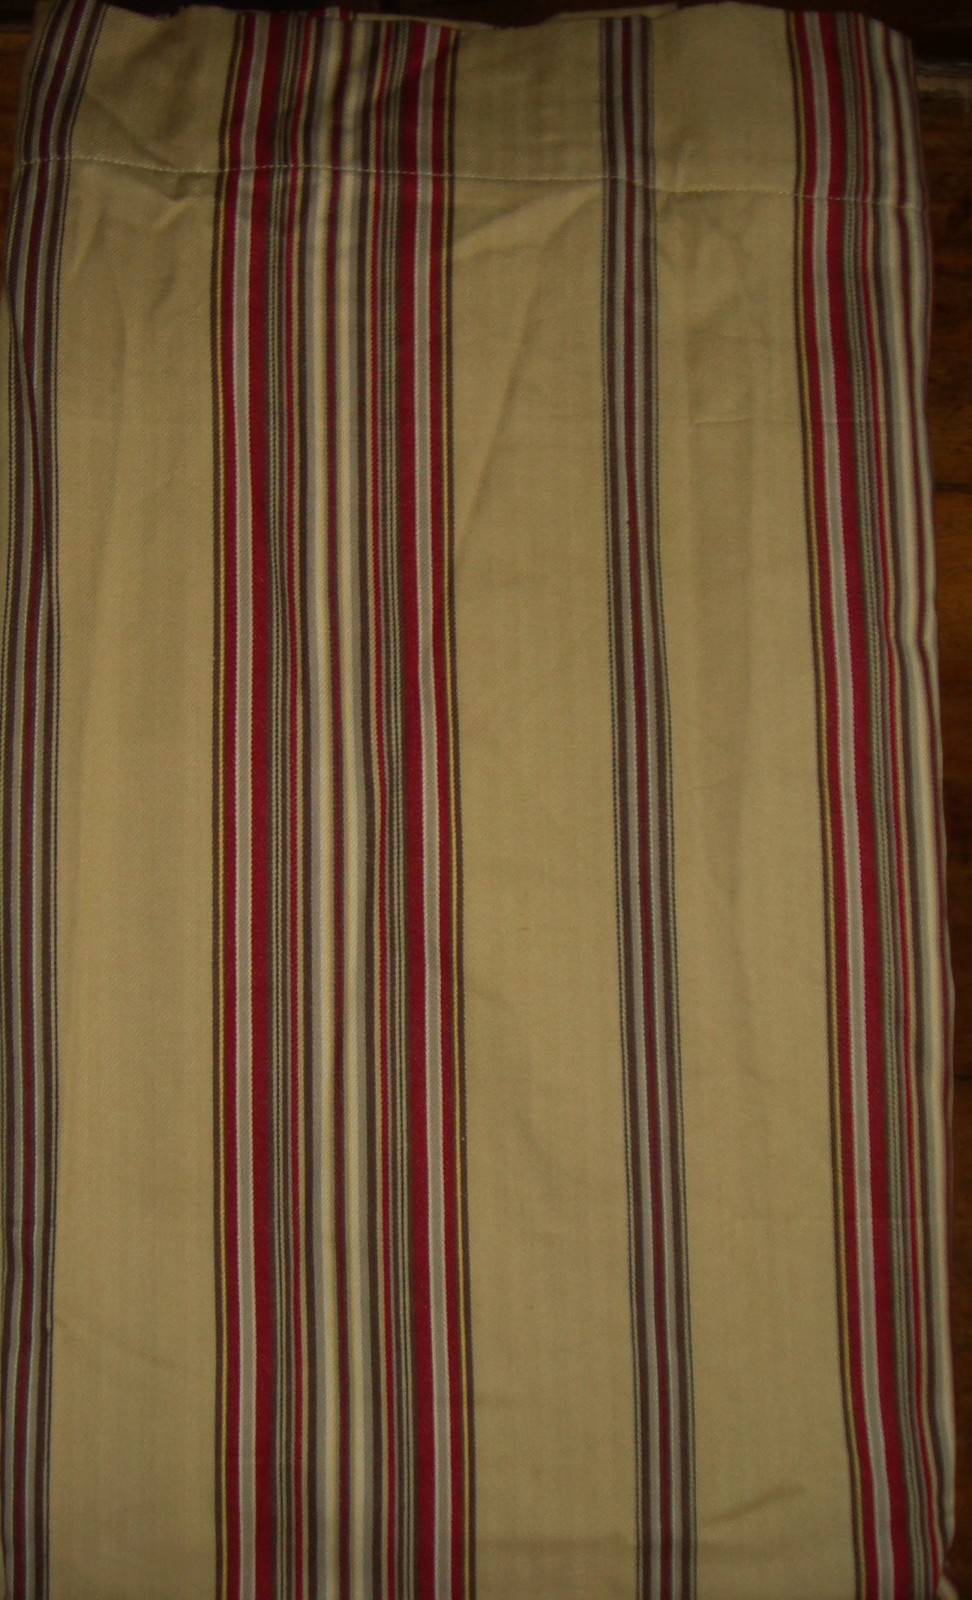 Pottery Barn Montgomery Stripe Drapery Panel 50 X 84 Wheat Red Brown Stripes E Curtains